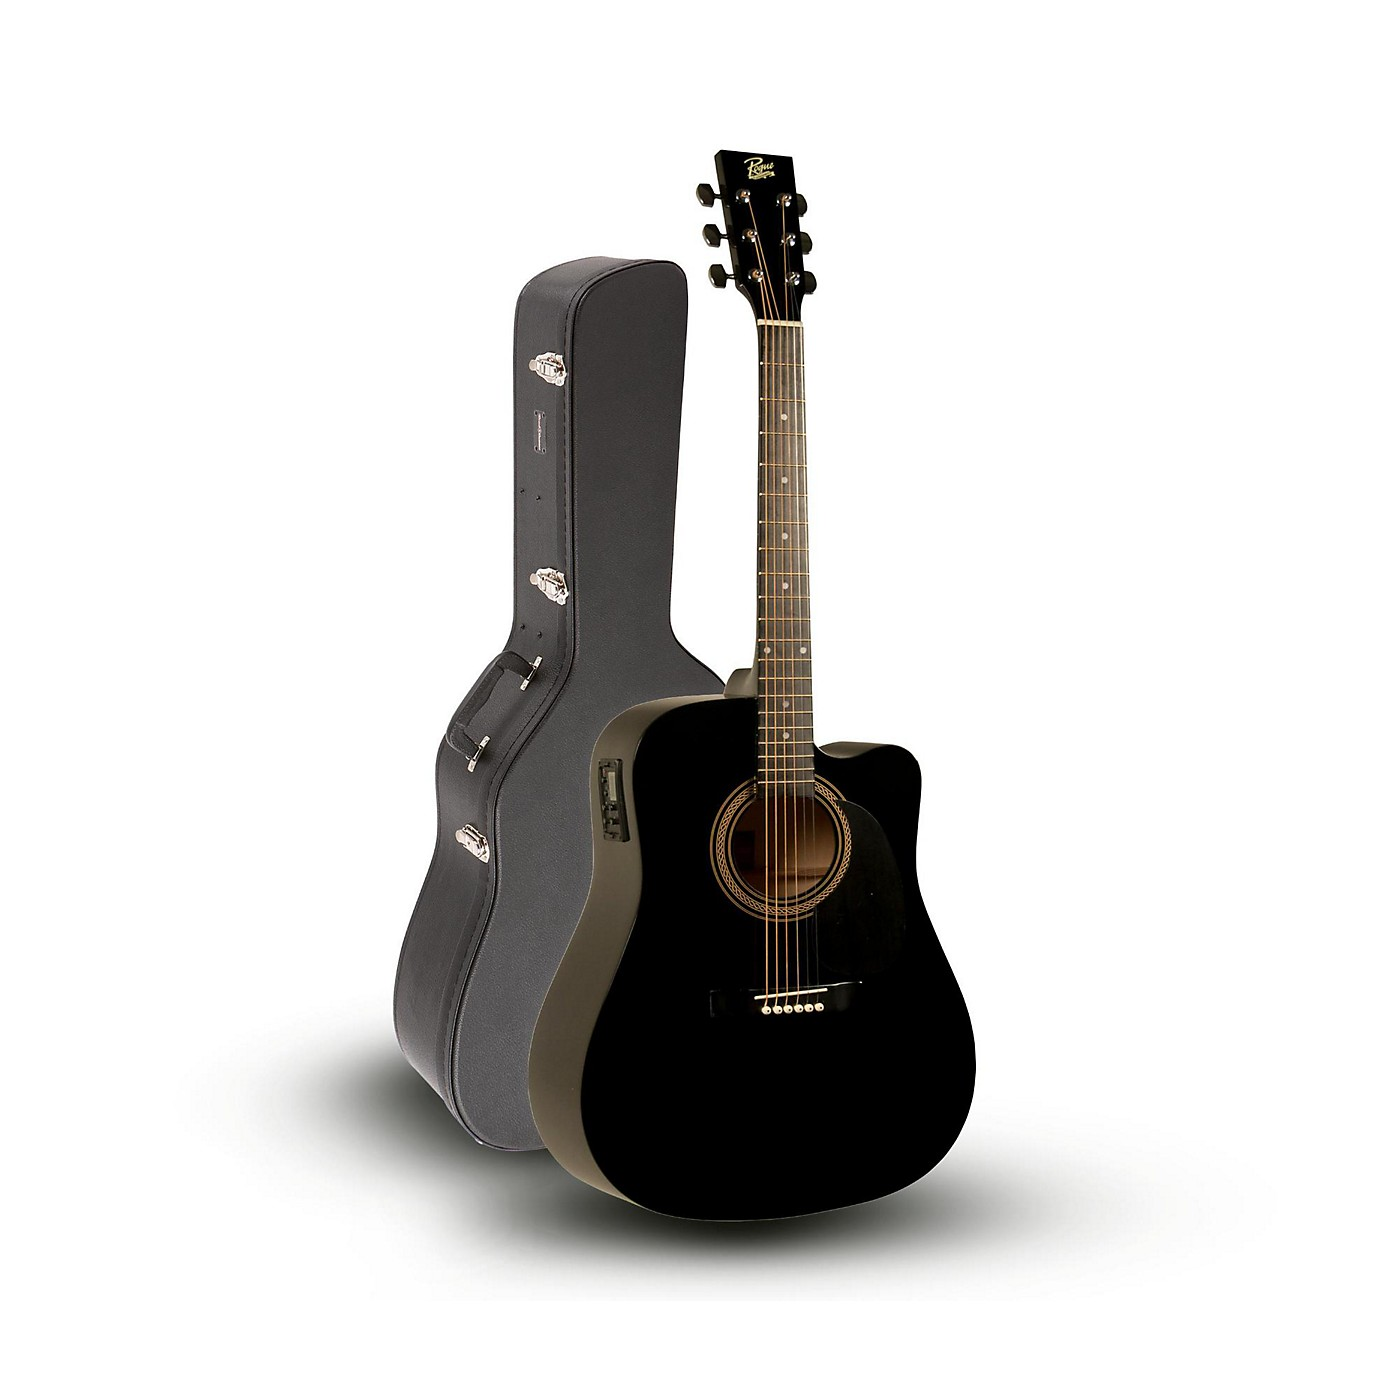 Rogue RA-090 Dreadnought Cutaway Acoustic-Electric Guitar, Black with Road Runner RRDWA Case thumbnail